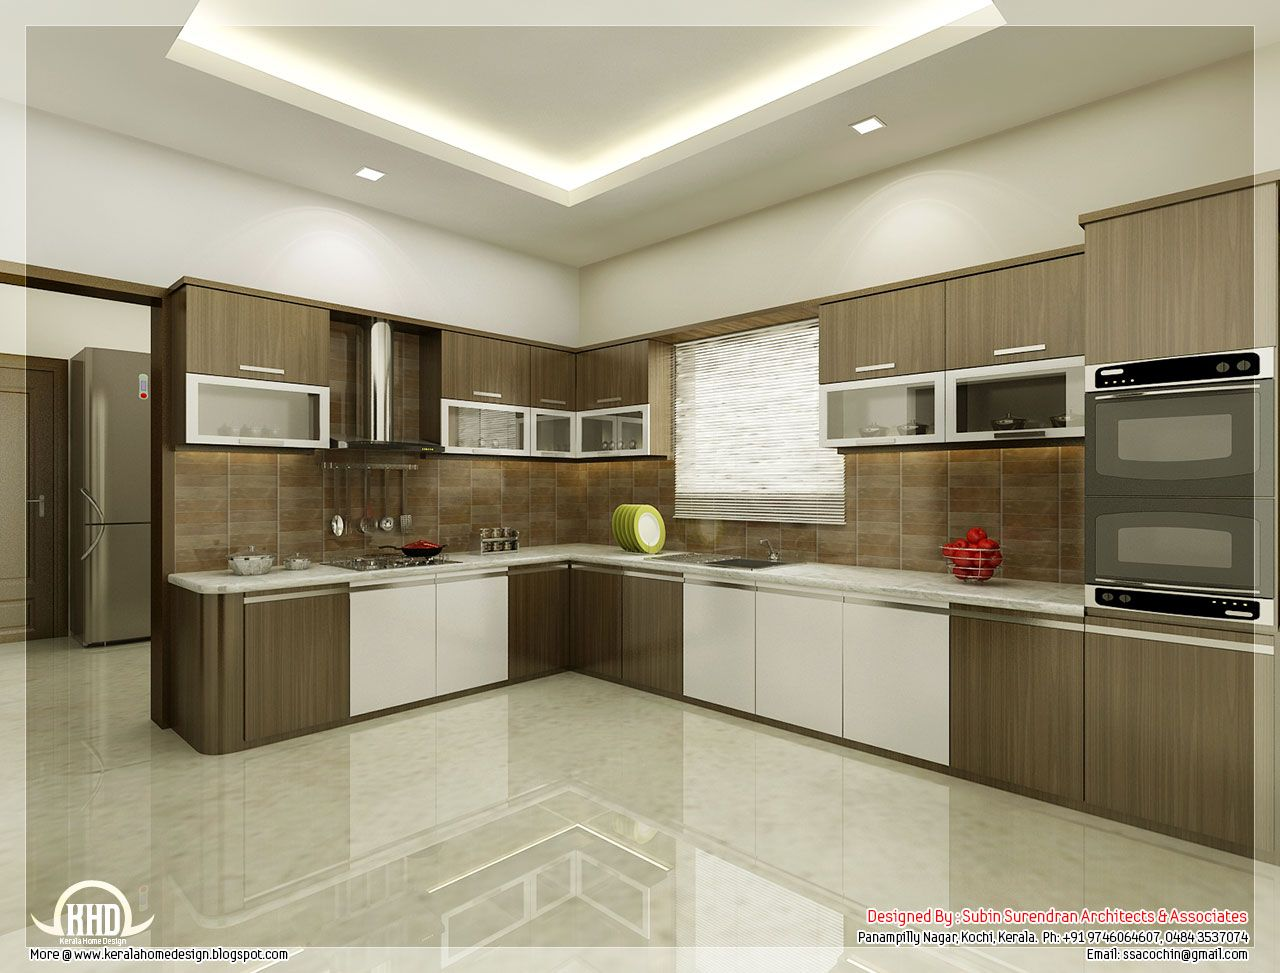 Superieur Kerala Kitchen Interior Design Modular Kitchen Kerala Kerala Kitchen  Kitchen Interior Views Ss Architects Cochin Home